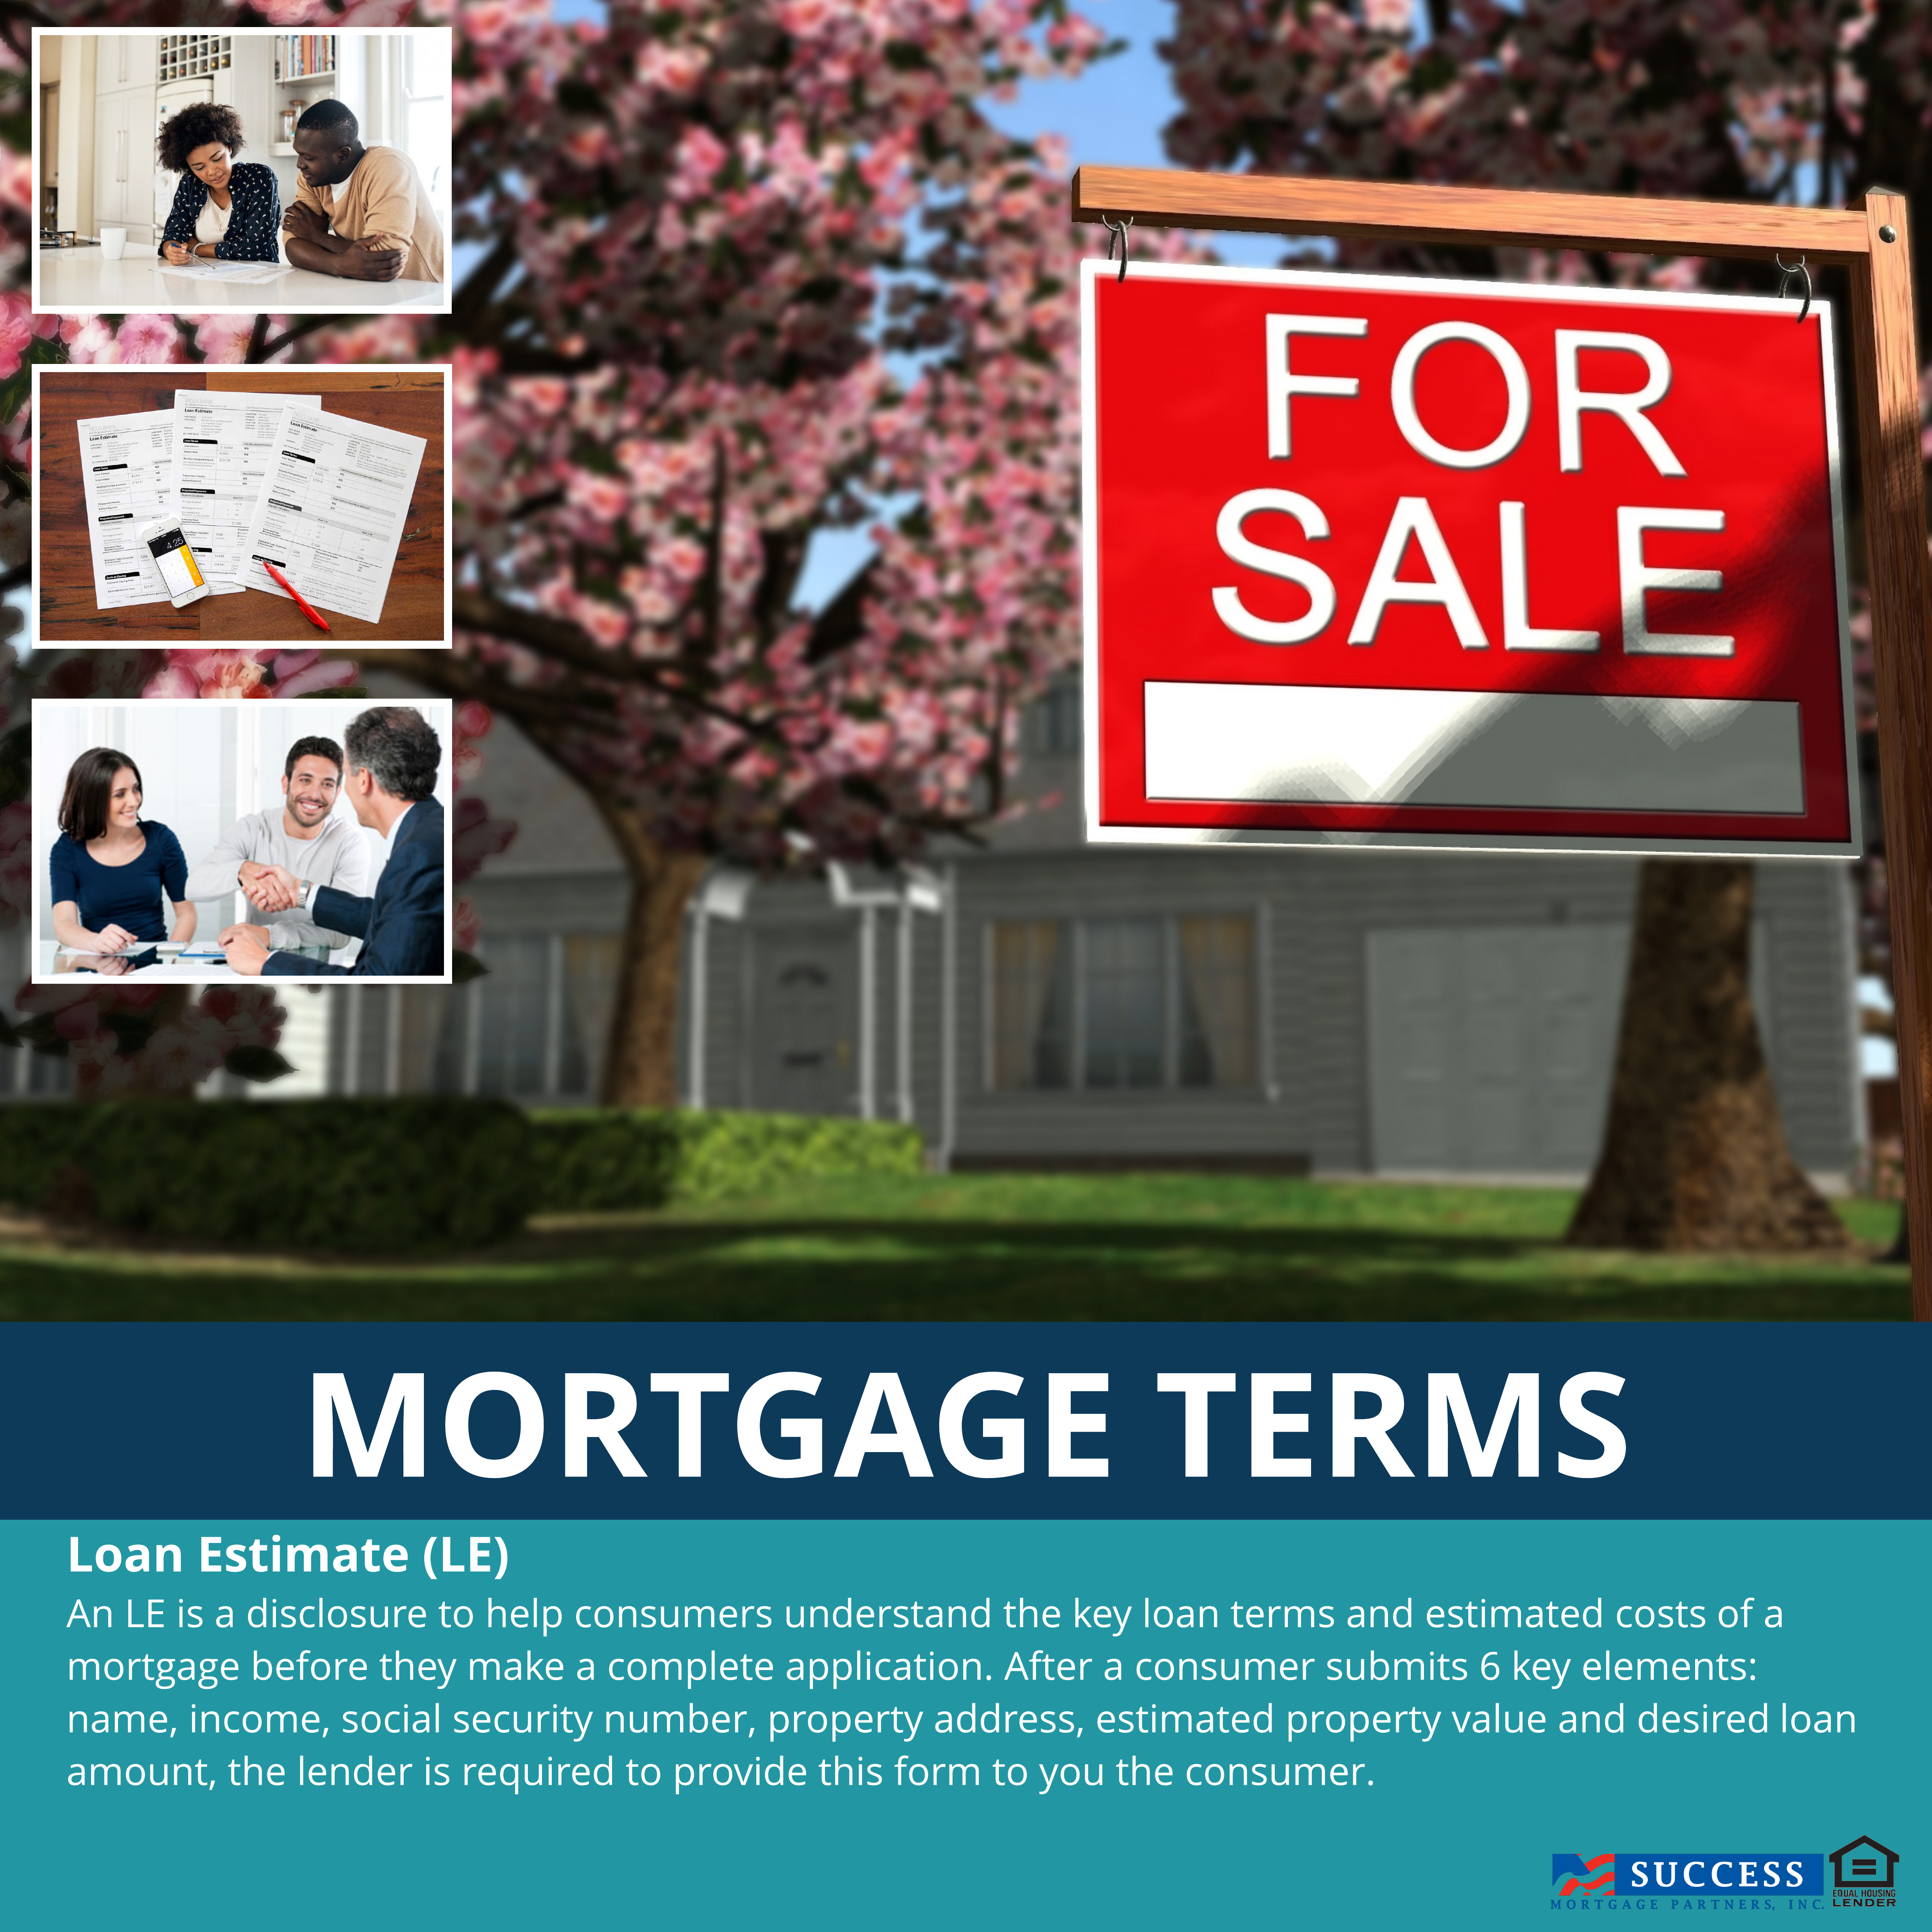 All Lenders Are Required To Use The Same Standard Loan Estimate